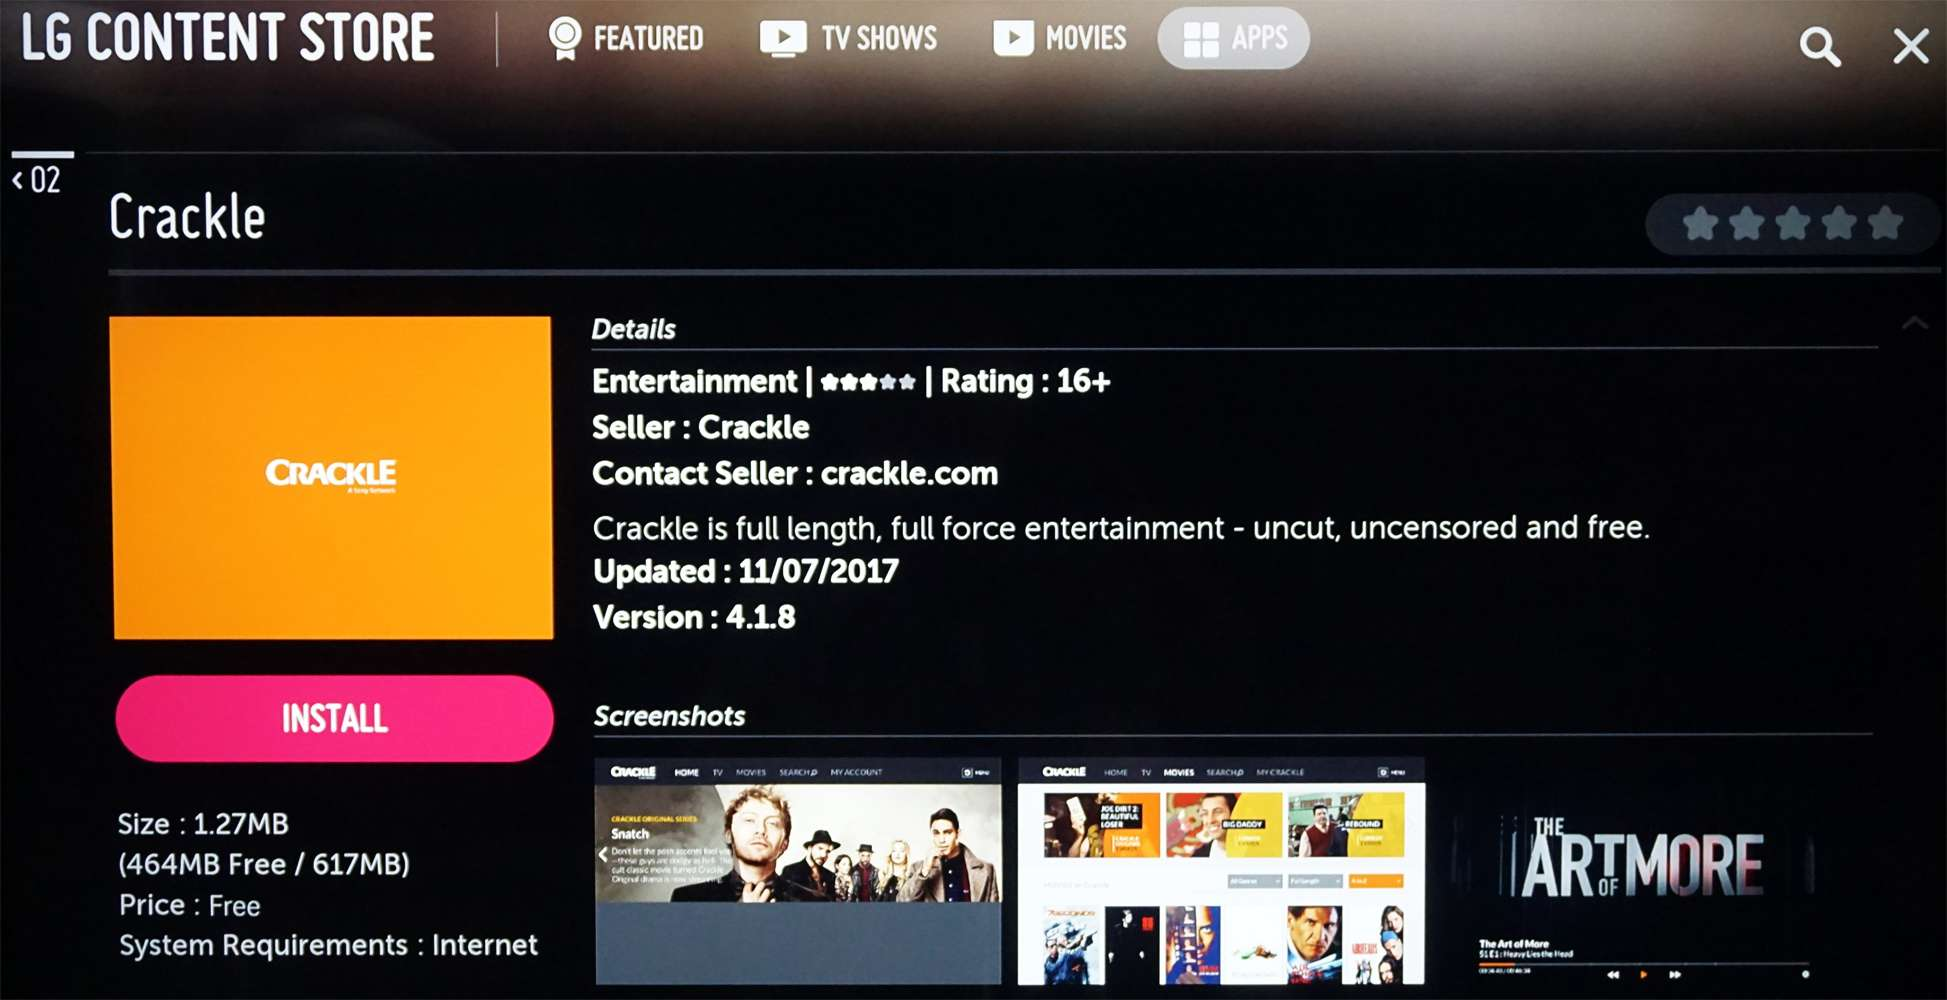 LG Content Store Crackle App Selected